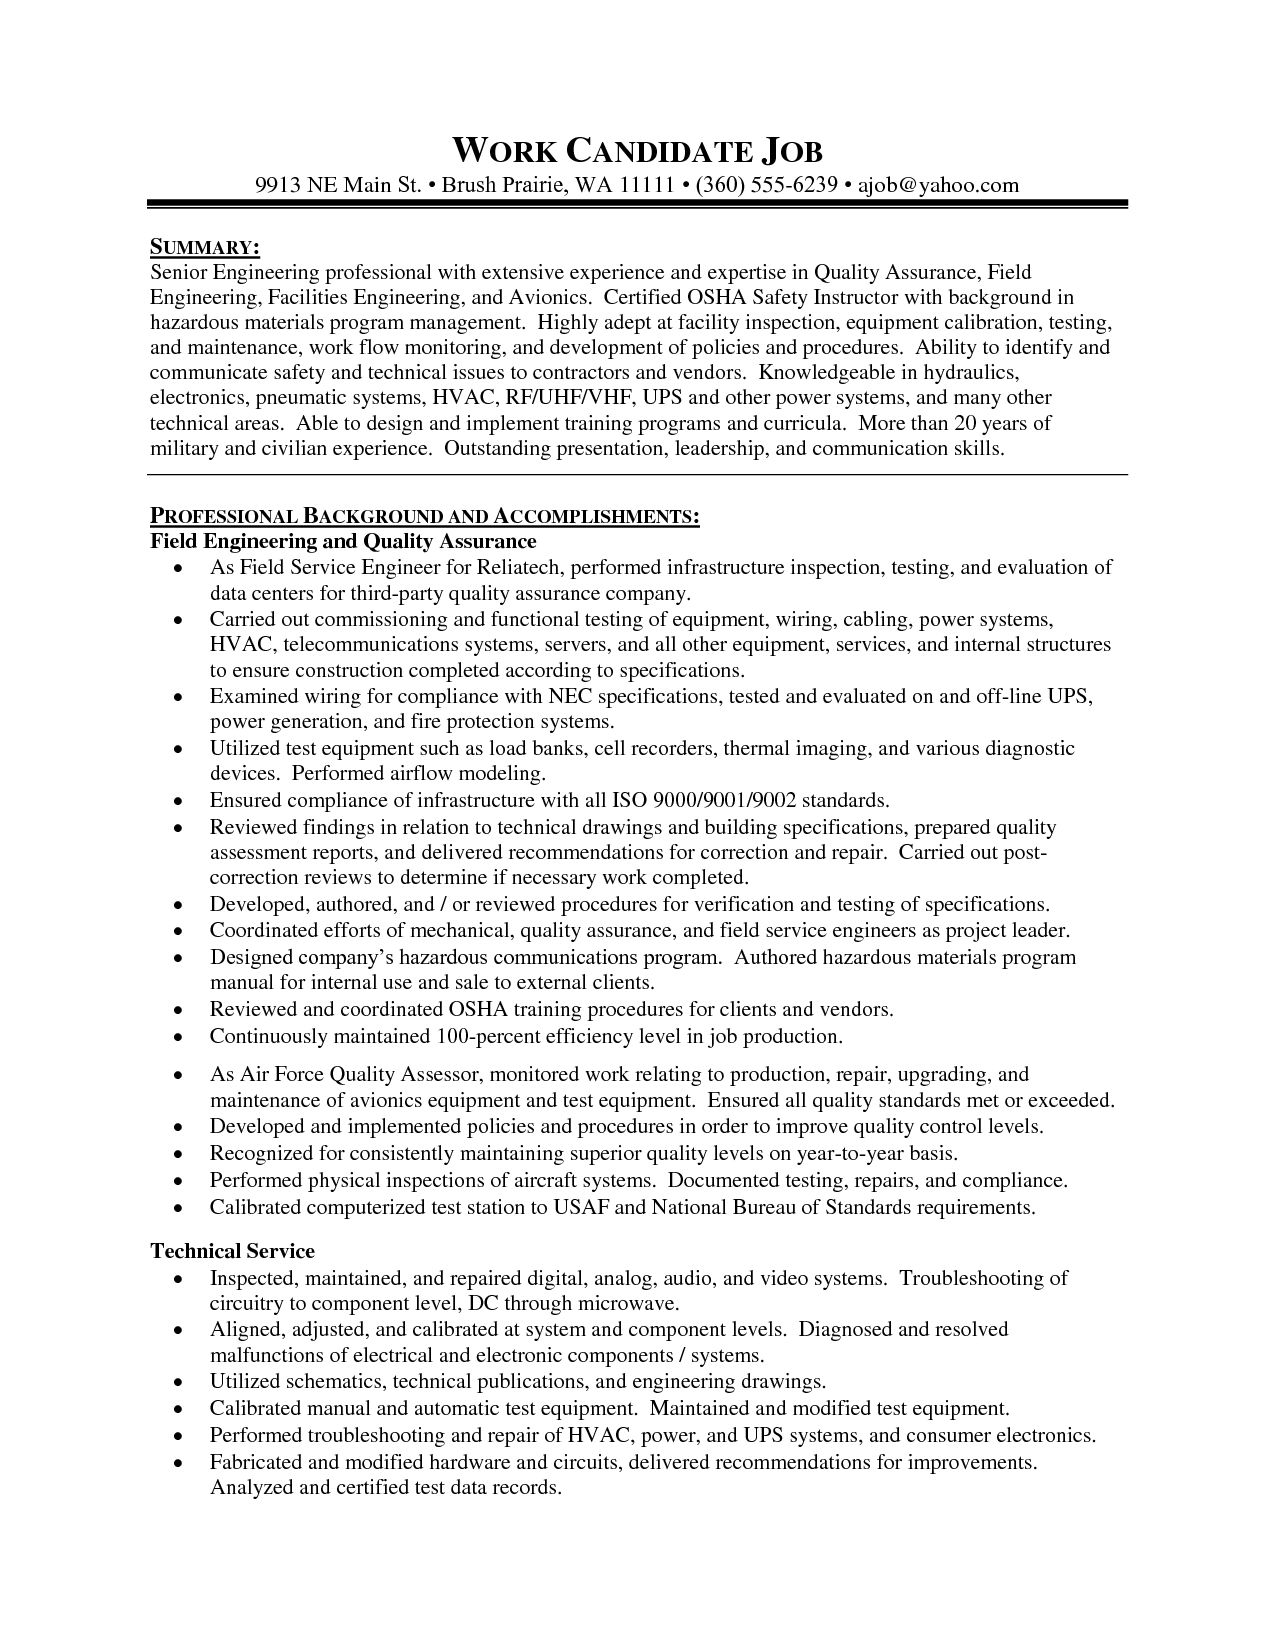 Call Center Manager Resume Resume Production Manager Summary Supervisor Pin Pinterest  Home